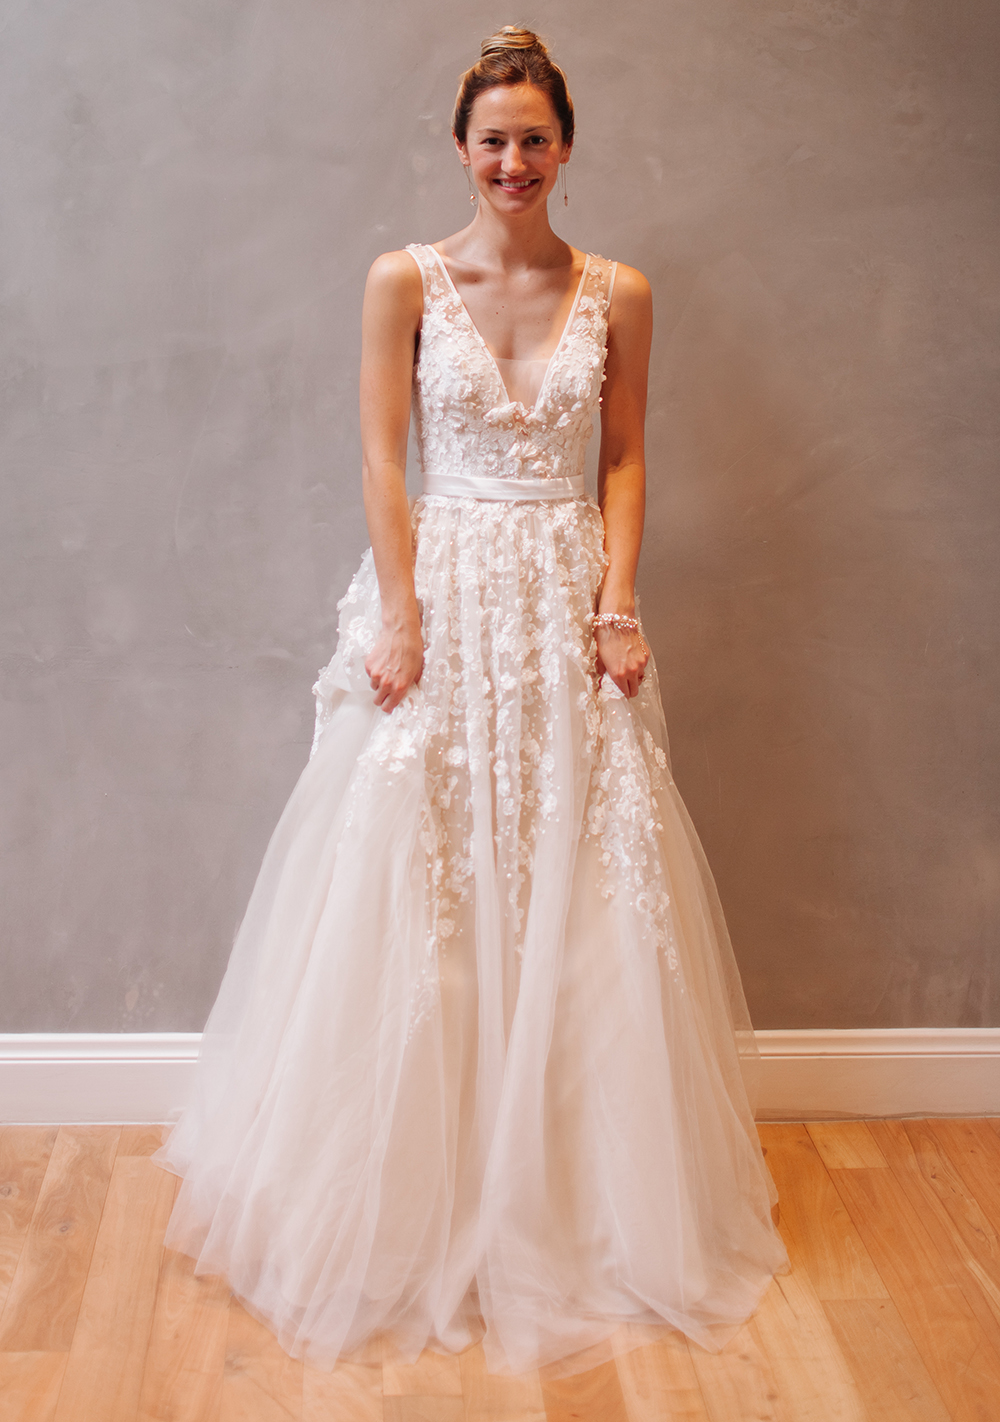 Wedding dresses tx discount wedding dresses for Wedding dresses in dallas tx for cheap